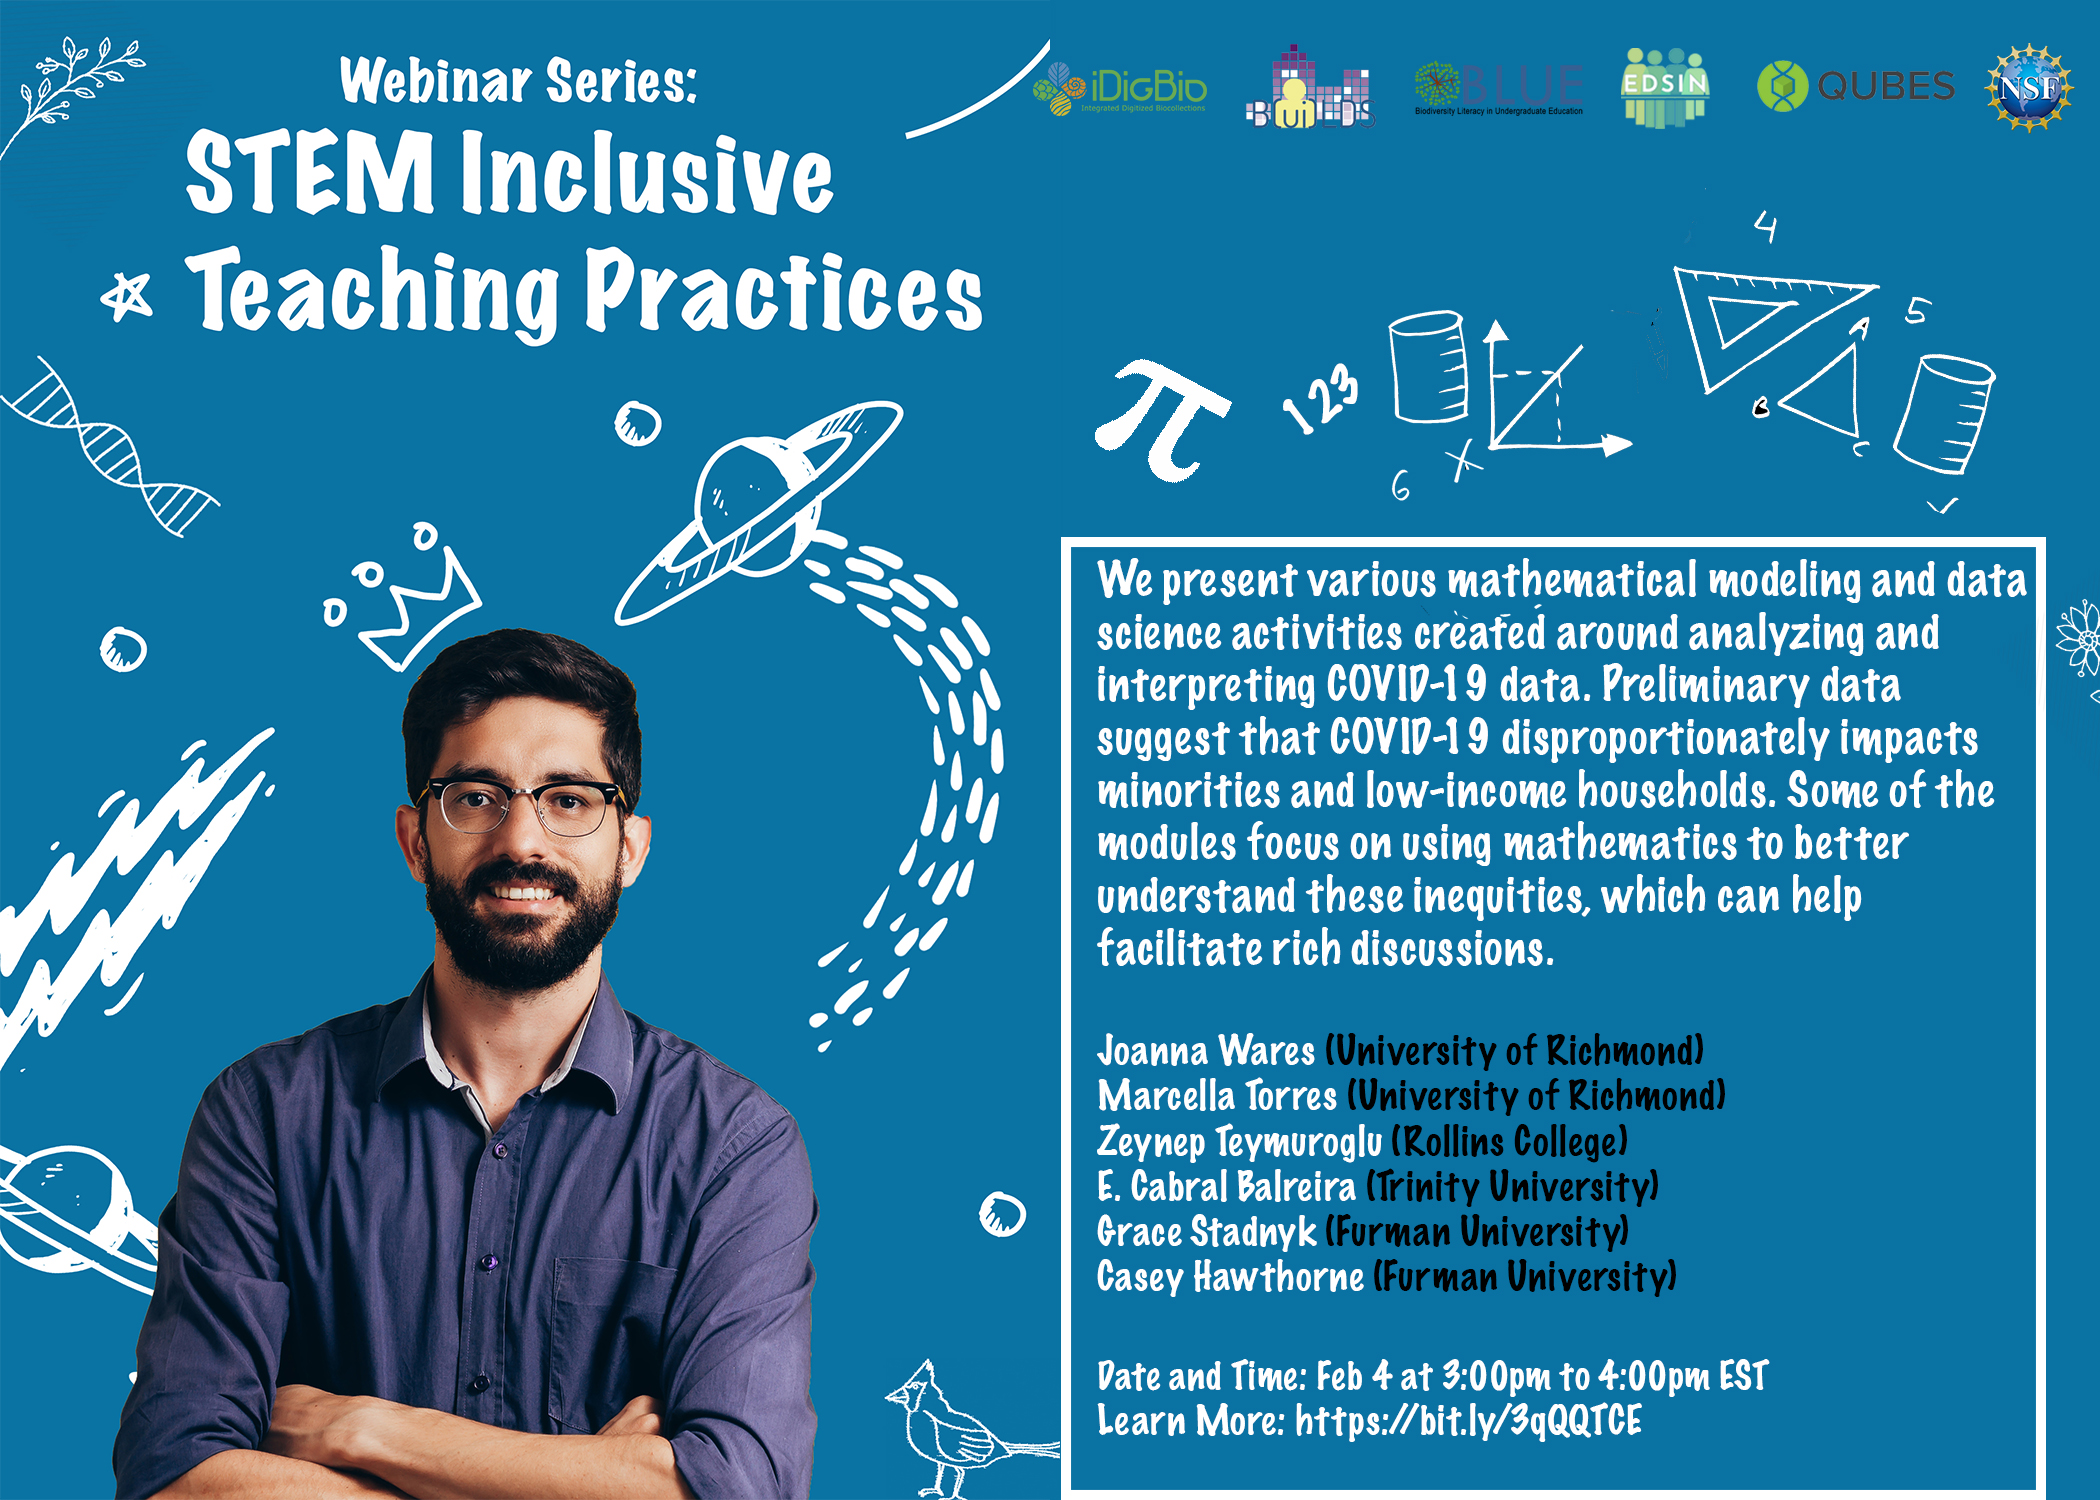 STEM Inclusive Teaching Practices Webinar Series: Socially Relevant Teaching in the Time of COVID-19